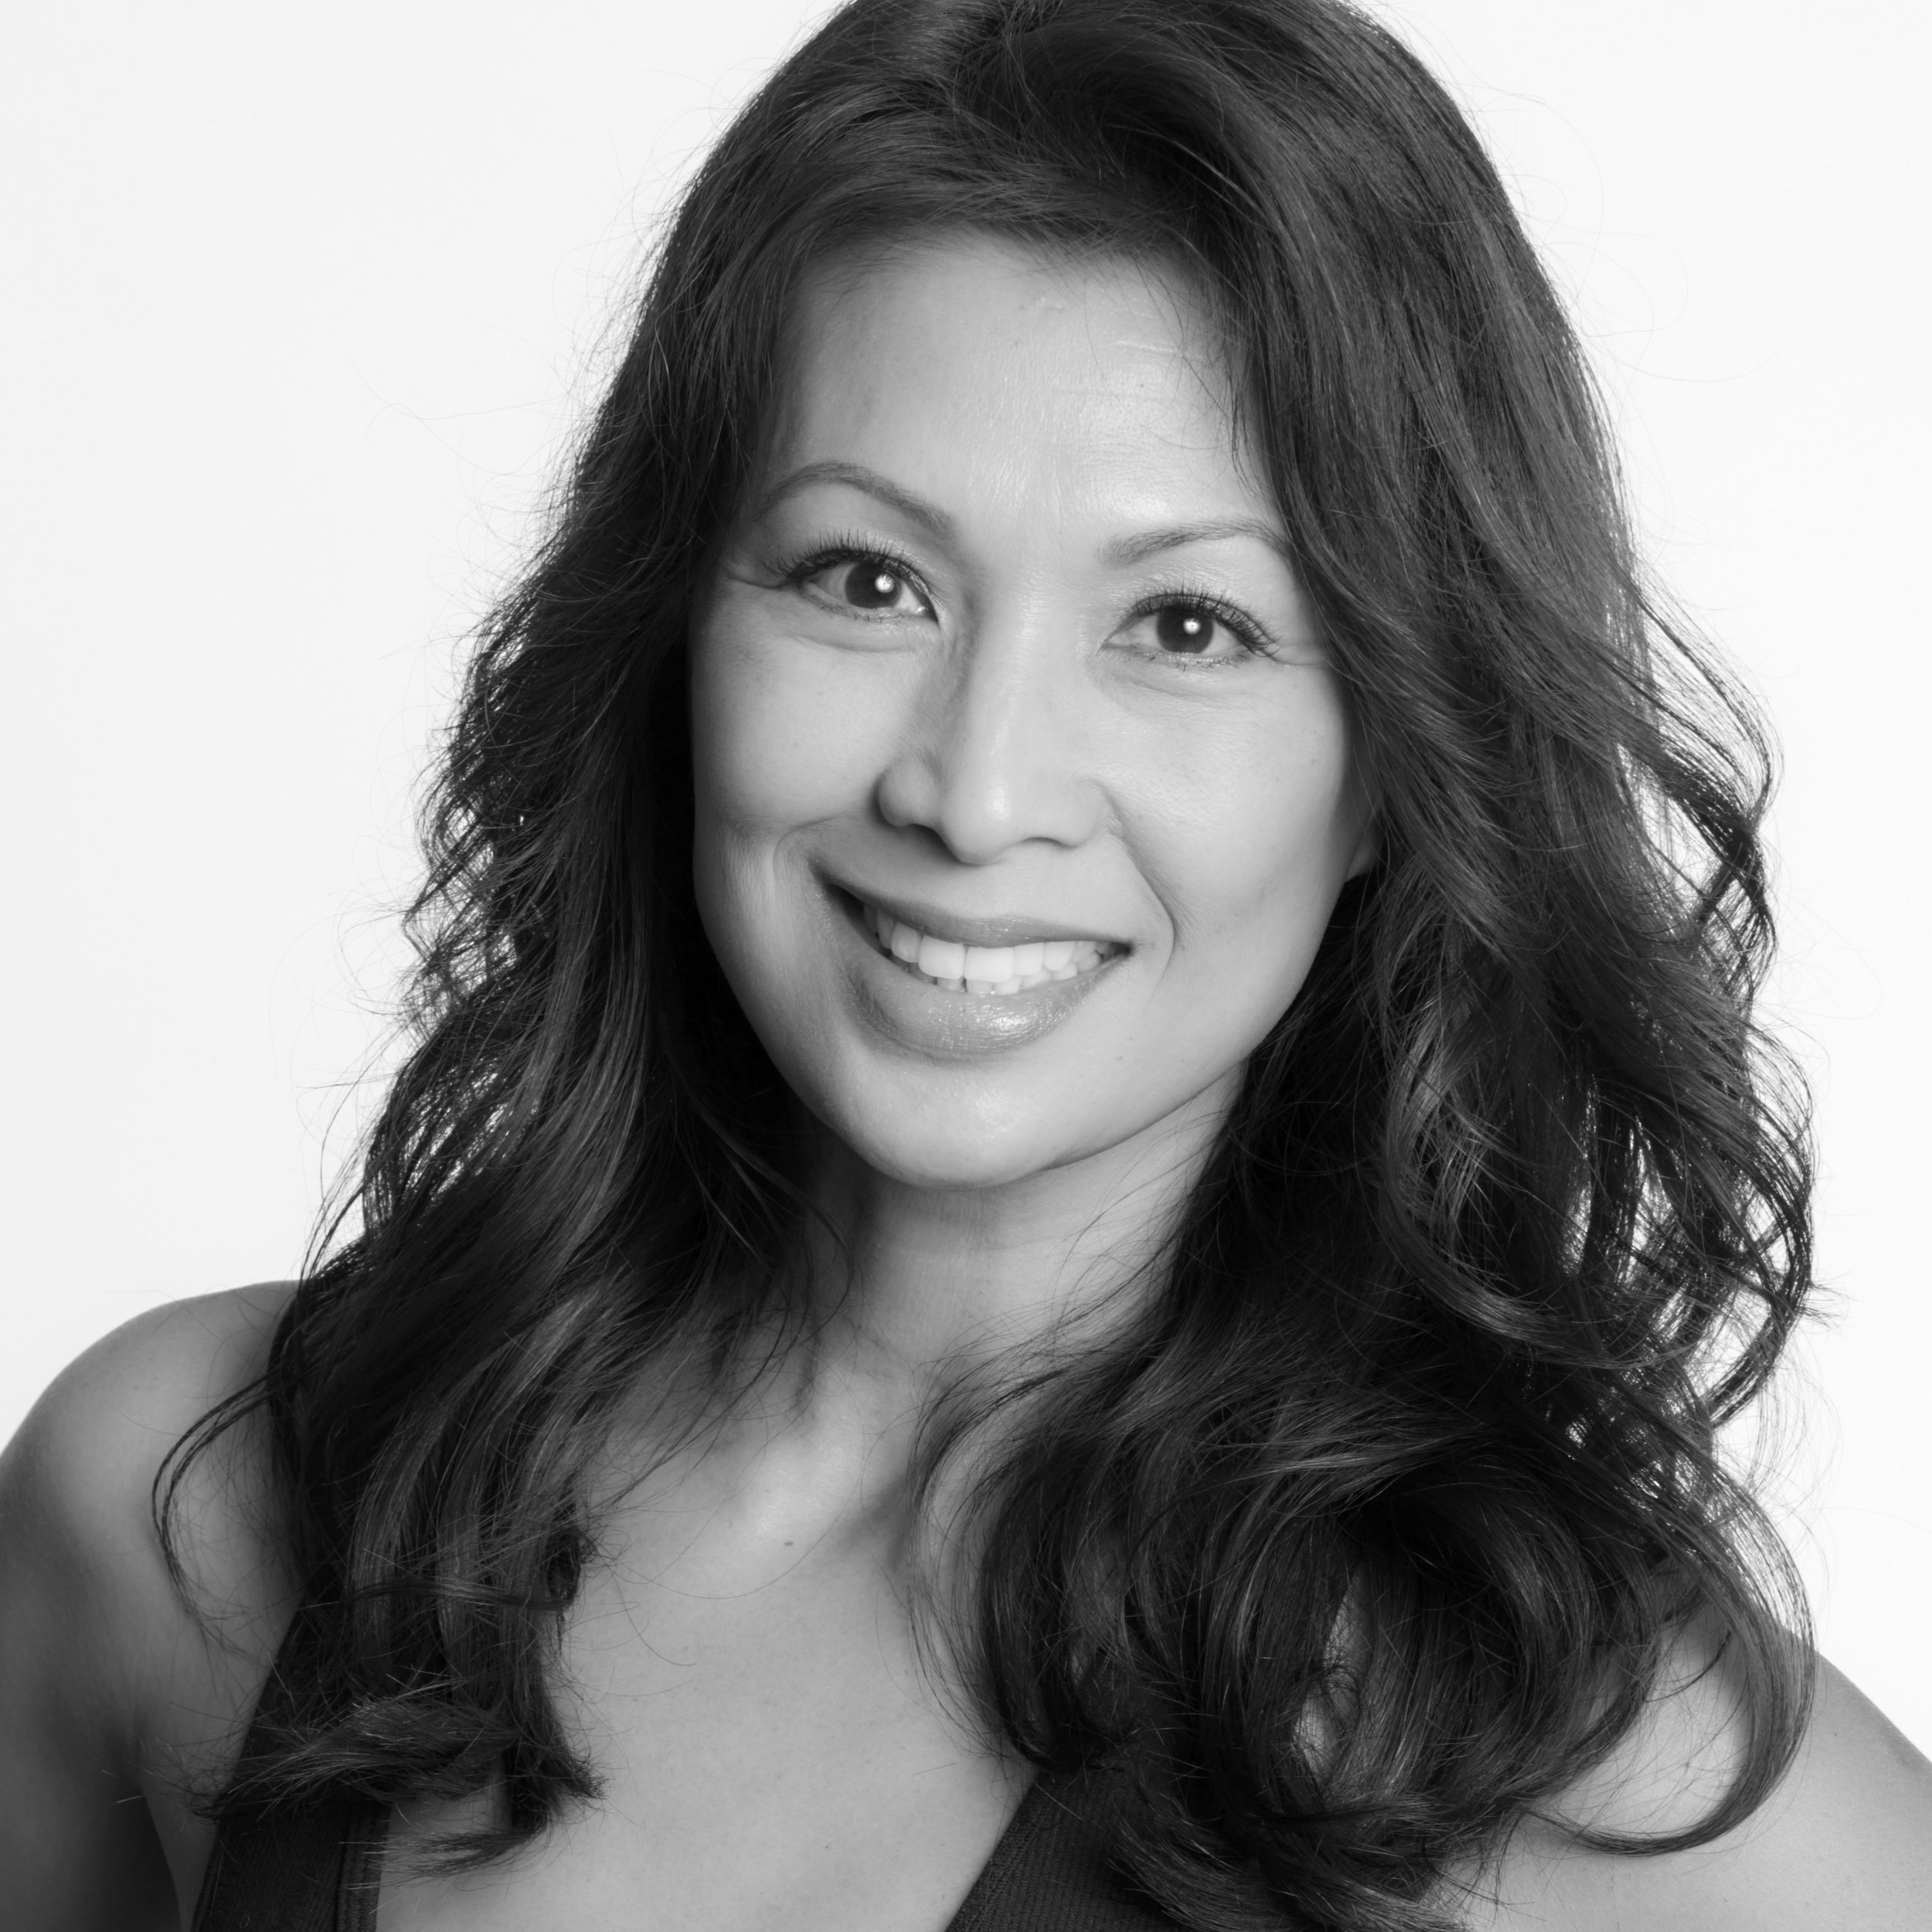 "A former military brat, Joan grew up on Hickam Air Force Base and graduated from Radford High School. She has worked on numerous productions on Oʻahu such as  Kong Skull Island ,  Mike and Dave Need Wedding Dates  and  Godzilla,  and ""Hawaiʻi Five-O."" A fitness buff, Joan holds a first-degree black belt in Kajukenbo, and is a pescatarian; she is very excited and honored to be a part of this film."